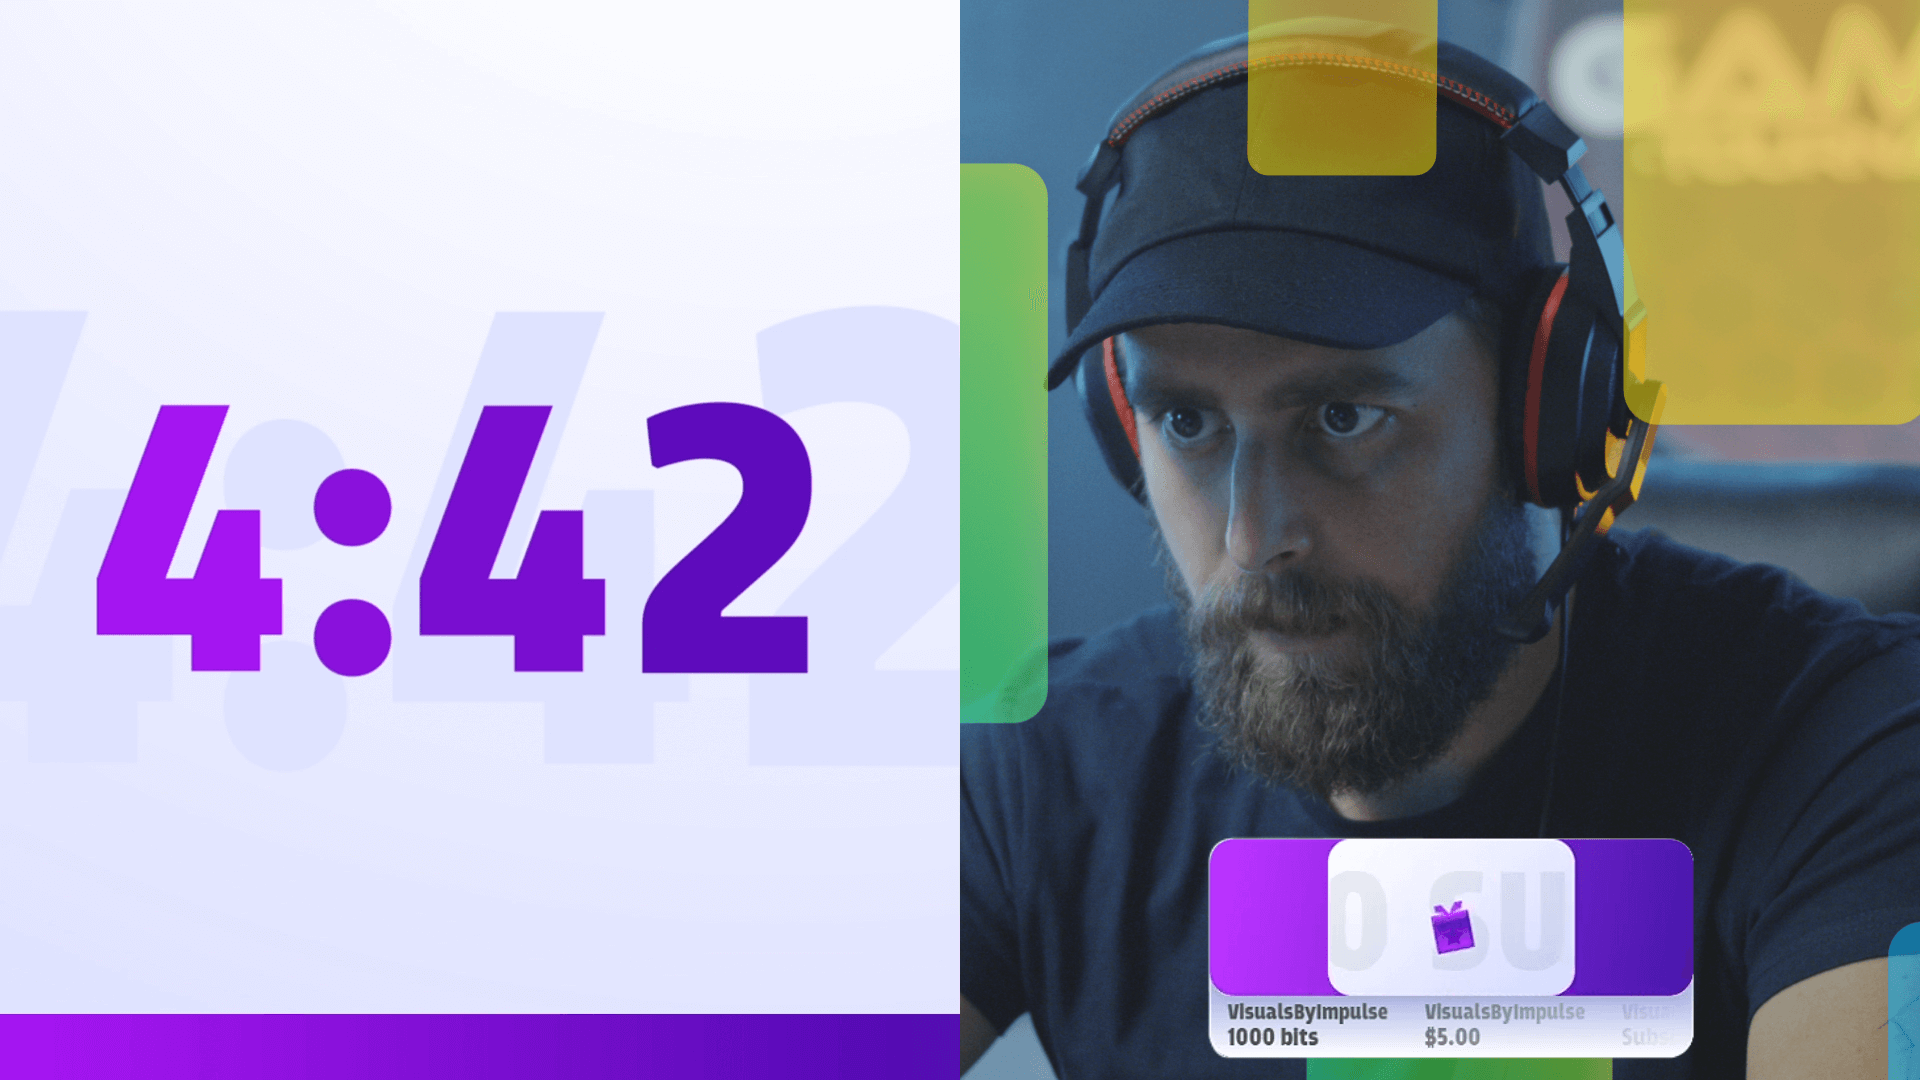 streamer layout with countdown timer and webcam